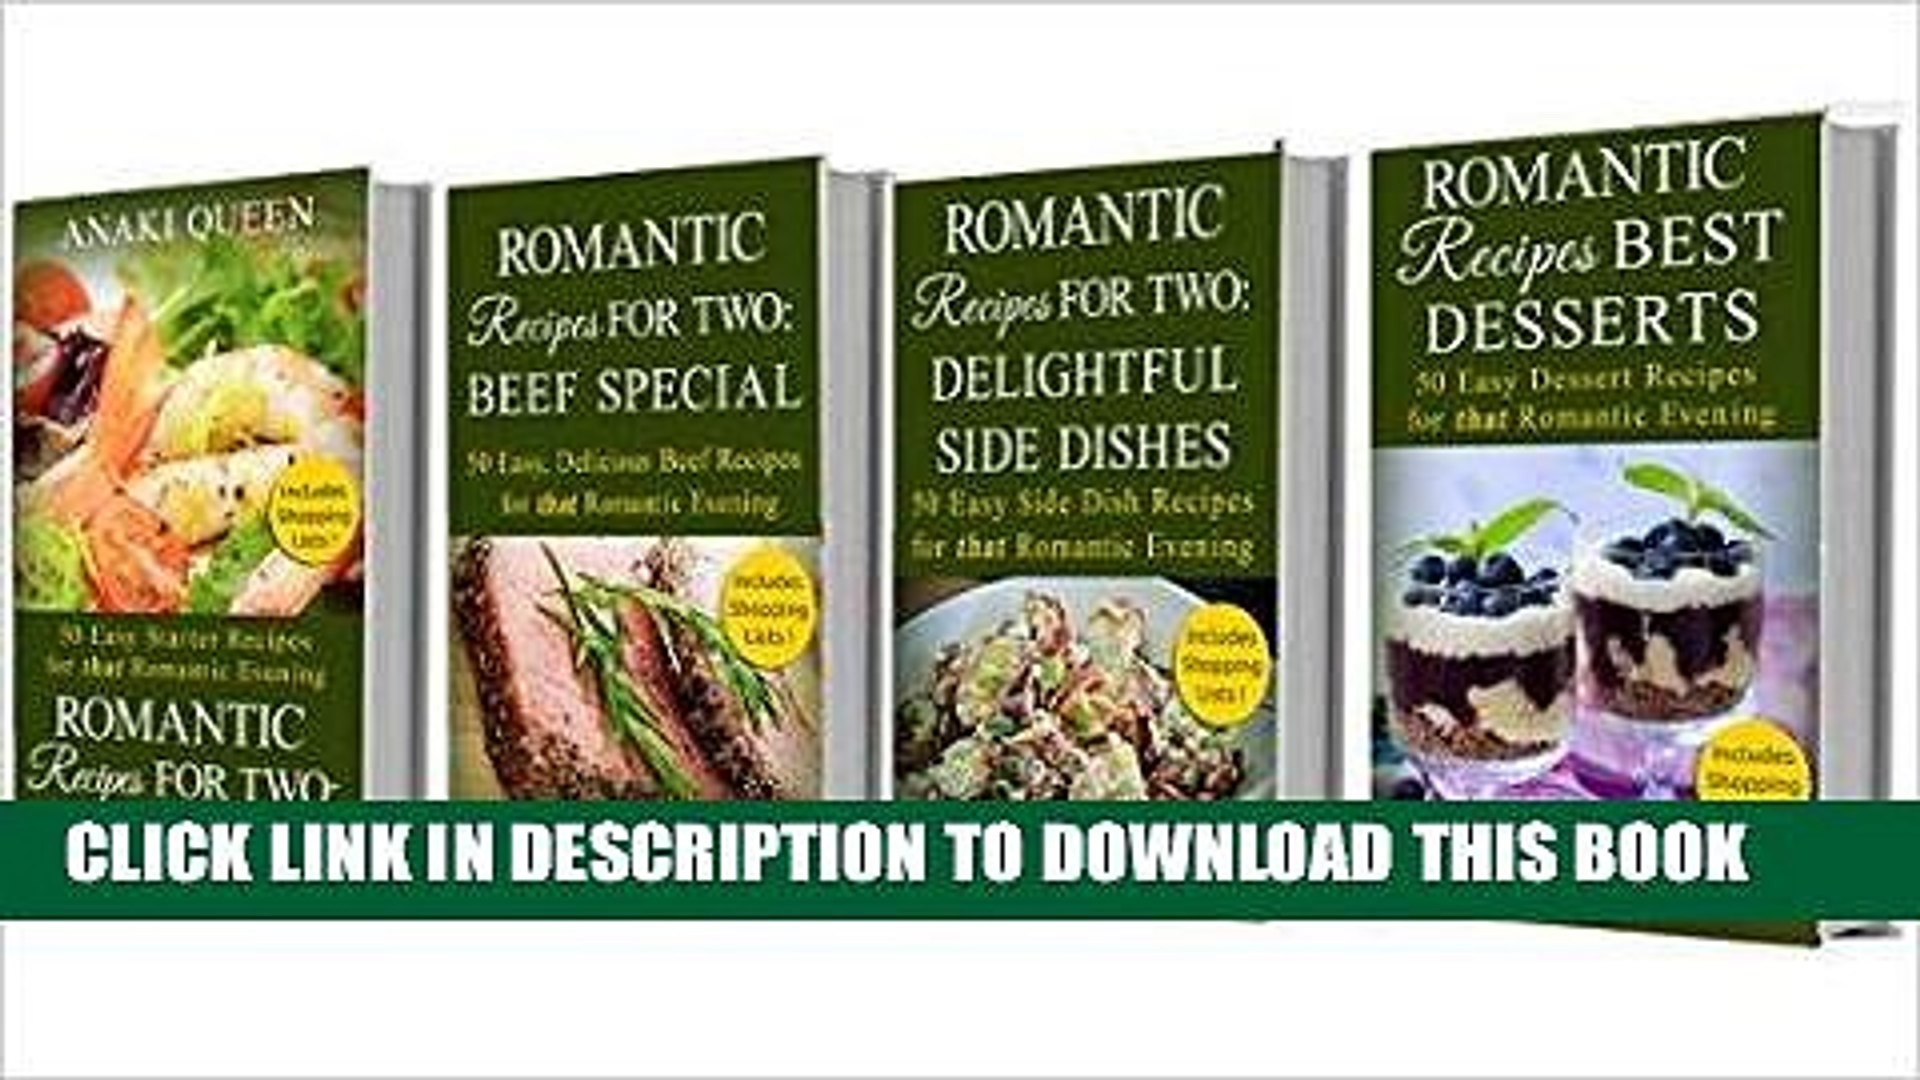 Ebook Romantic Recipes for Two - Box Set 1: Romantic Recipes including Starters, Beef Special,